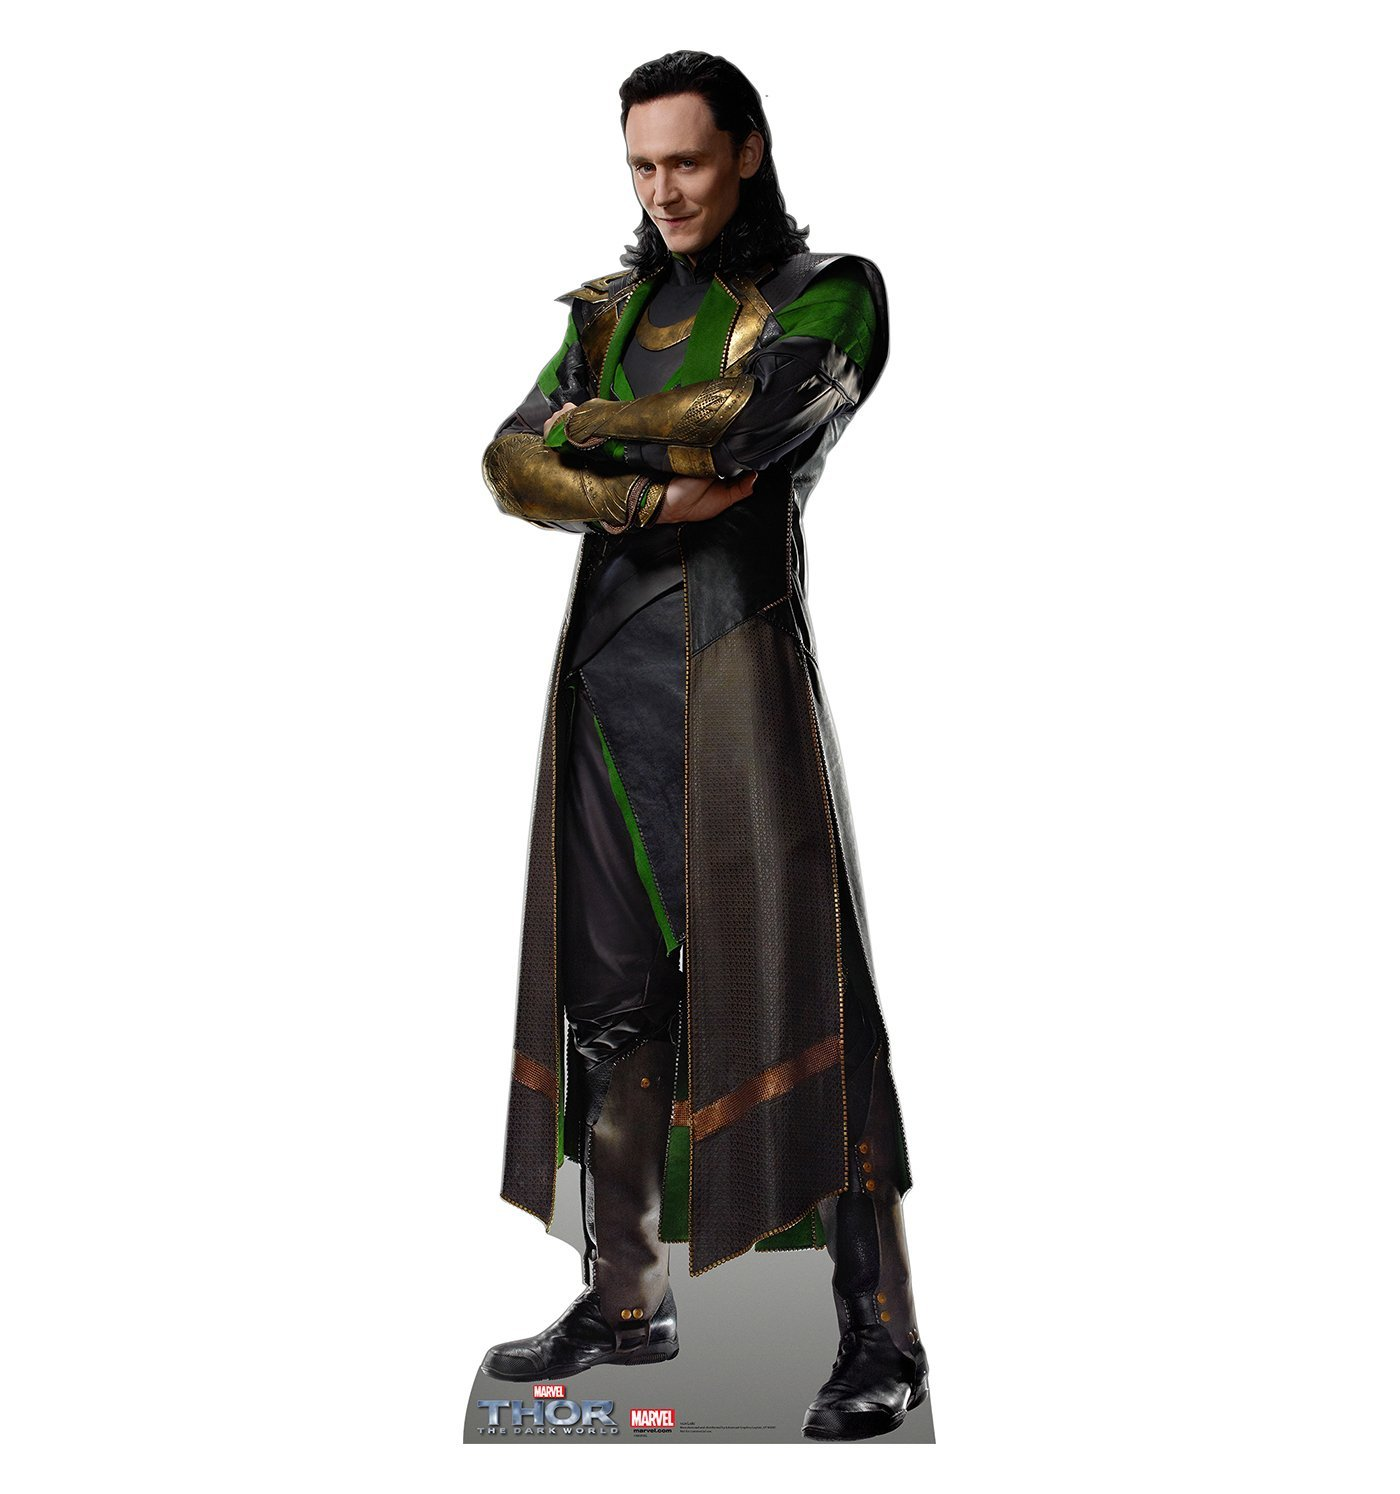 Loki Standup cardboard cut out released